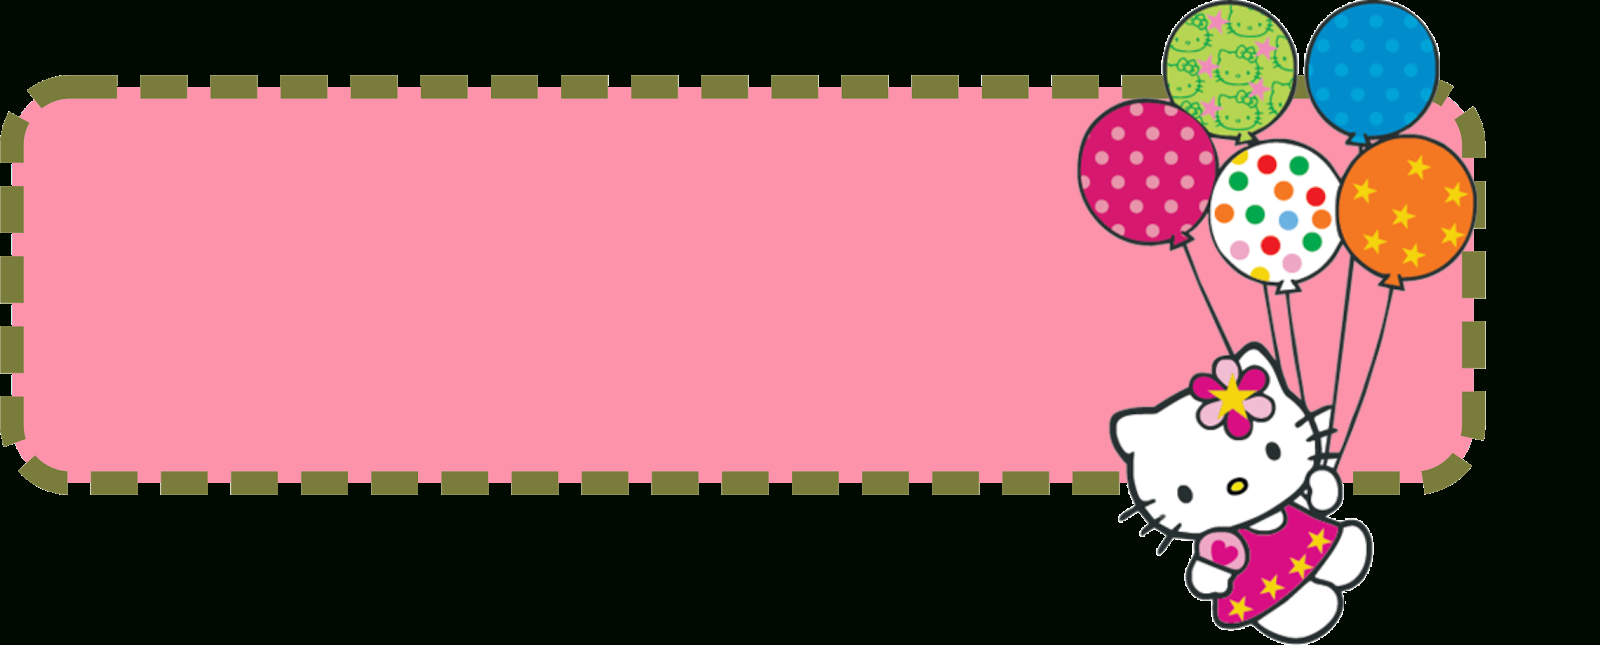 Hello Kitty Banner Template | Banner And Forum Templates within Hello Kitty Banner Template